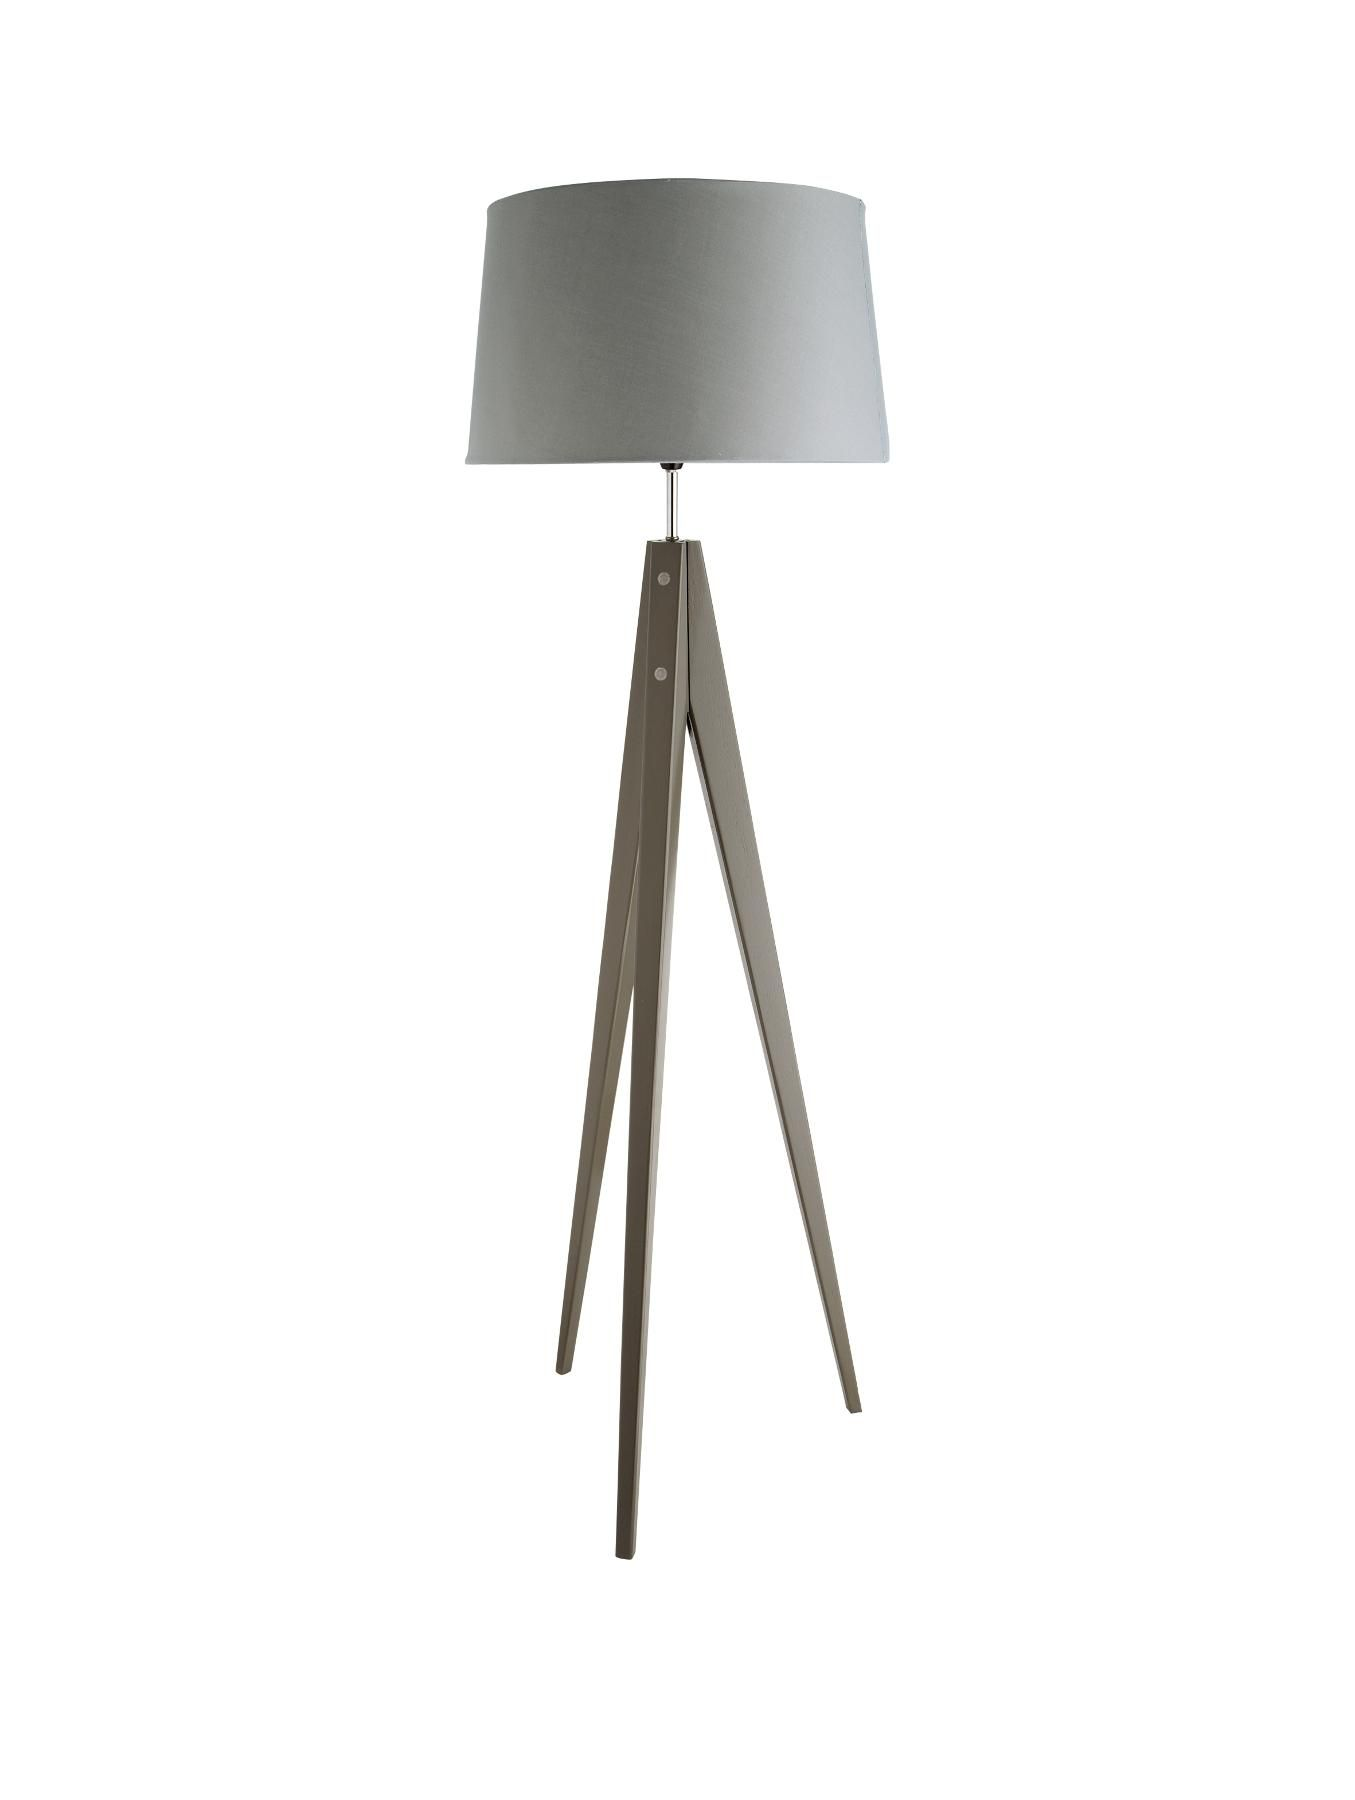 Thea Tripod Floor Lamp | Tripod, Floor lamp and Drum shade